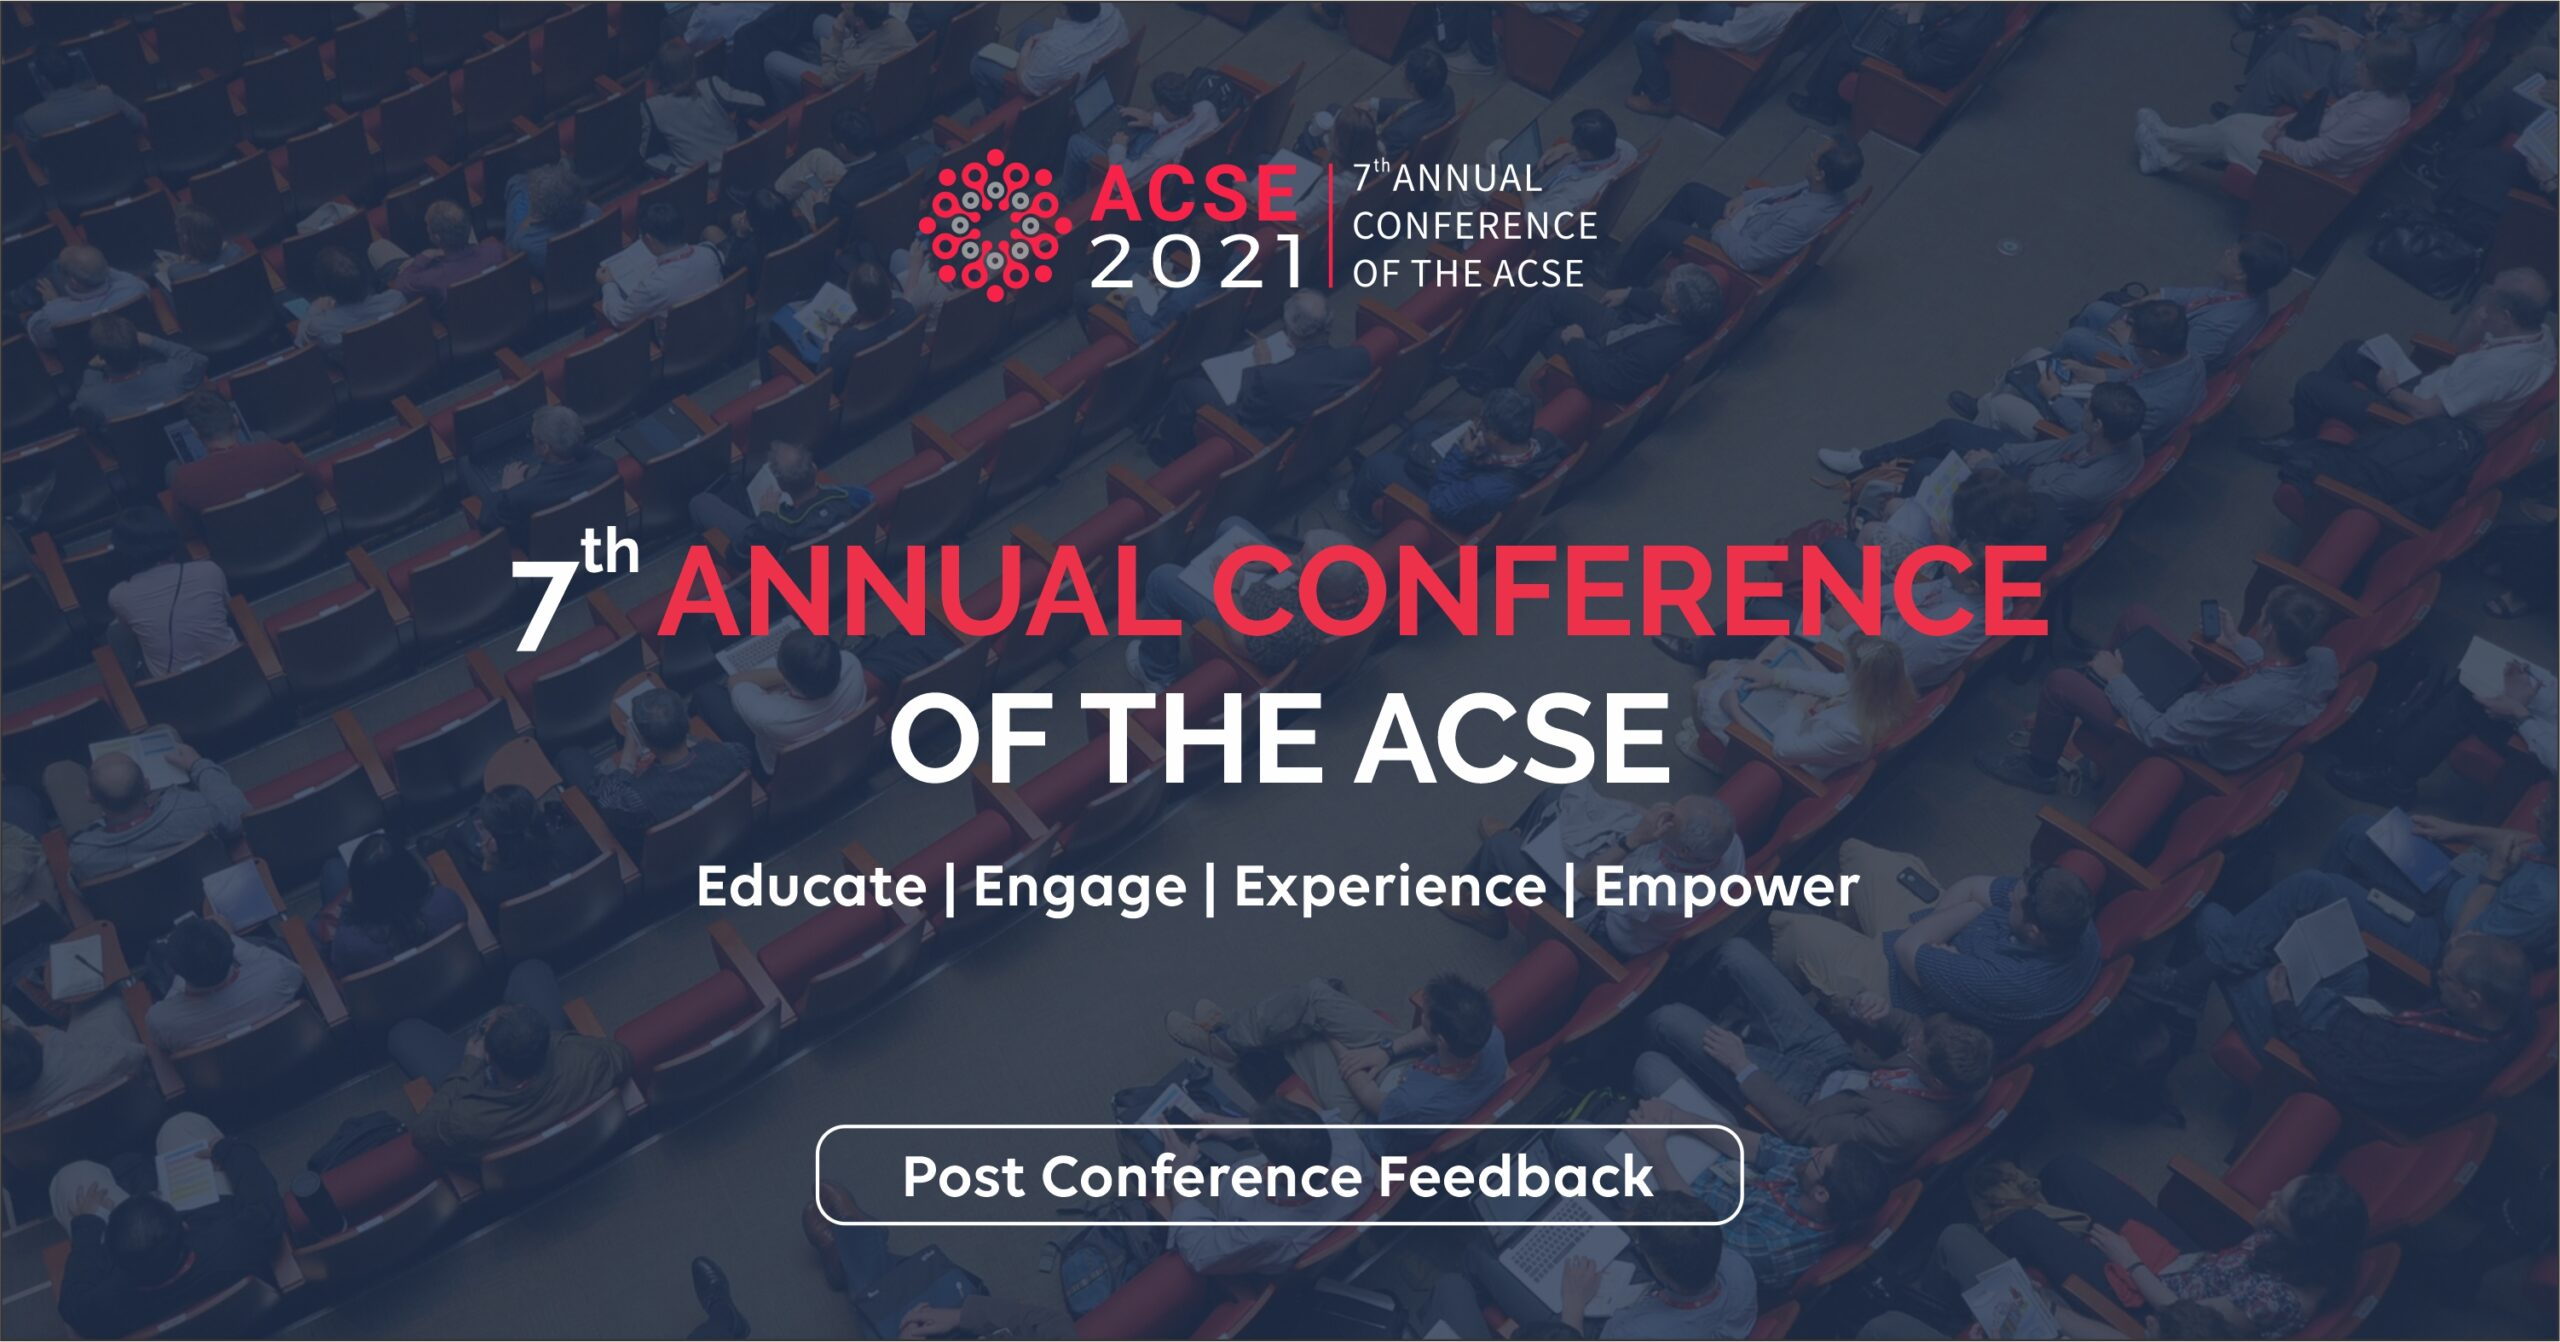 7th ACSE Annual Conference Highlights